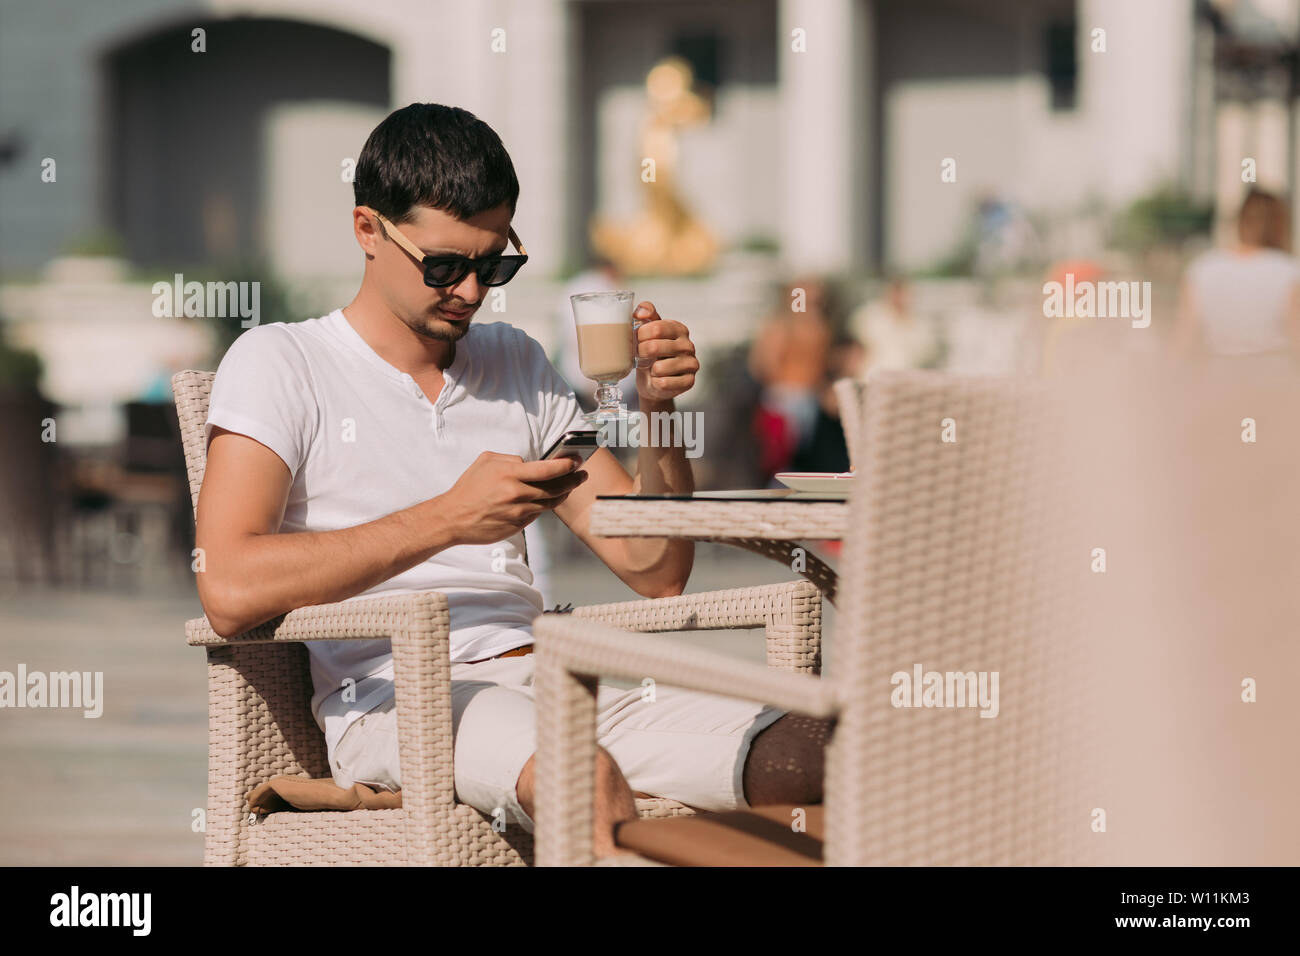 portrait of man in sunglasses sitting in a cafe and drinking coffee on a sunny summer day. Stock Photo